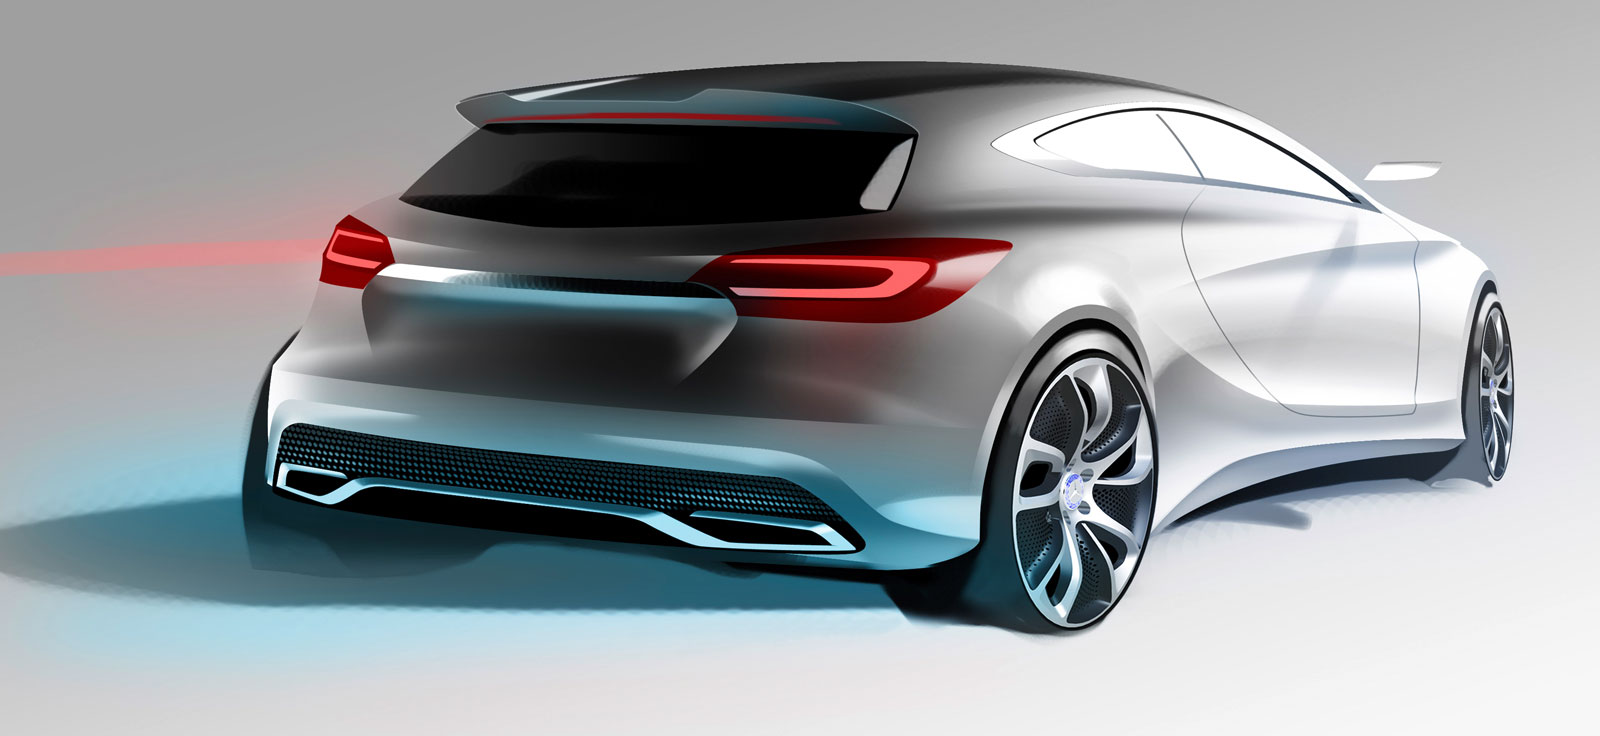 04_Mercedes-Benz-Concept-A-Class-Design-Sketch-04